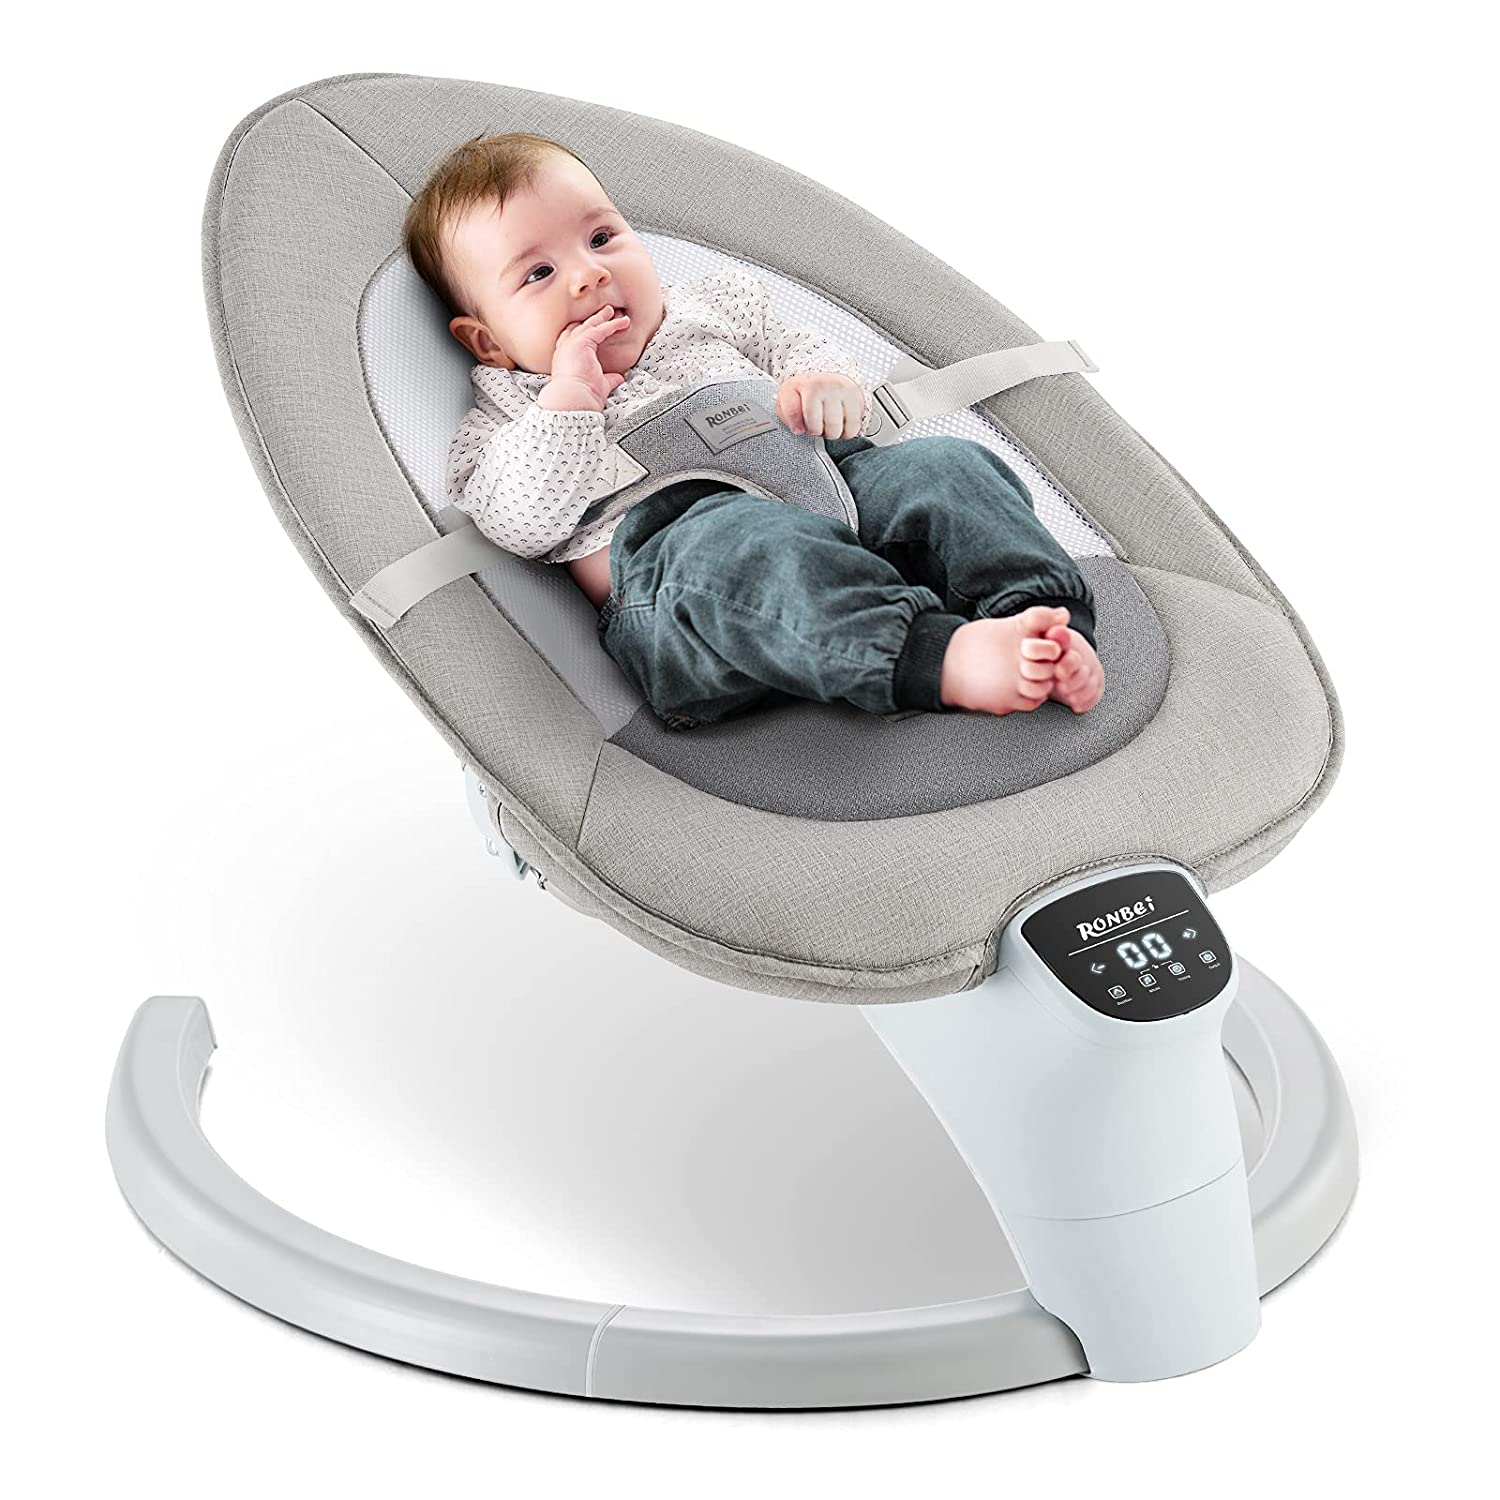 Baby Swing RONBEI Comfort Infants Natu Today's only Cradling All items free shipping for